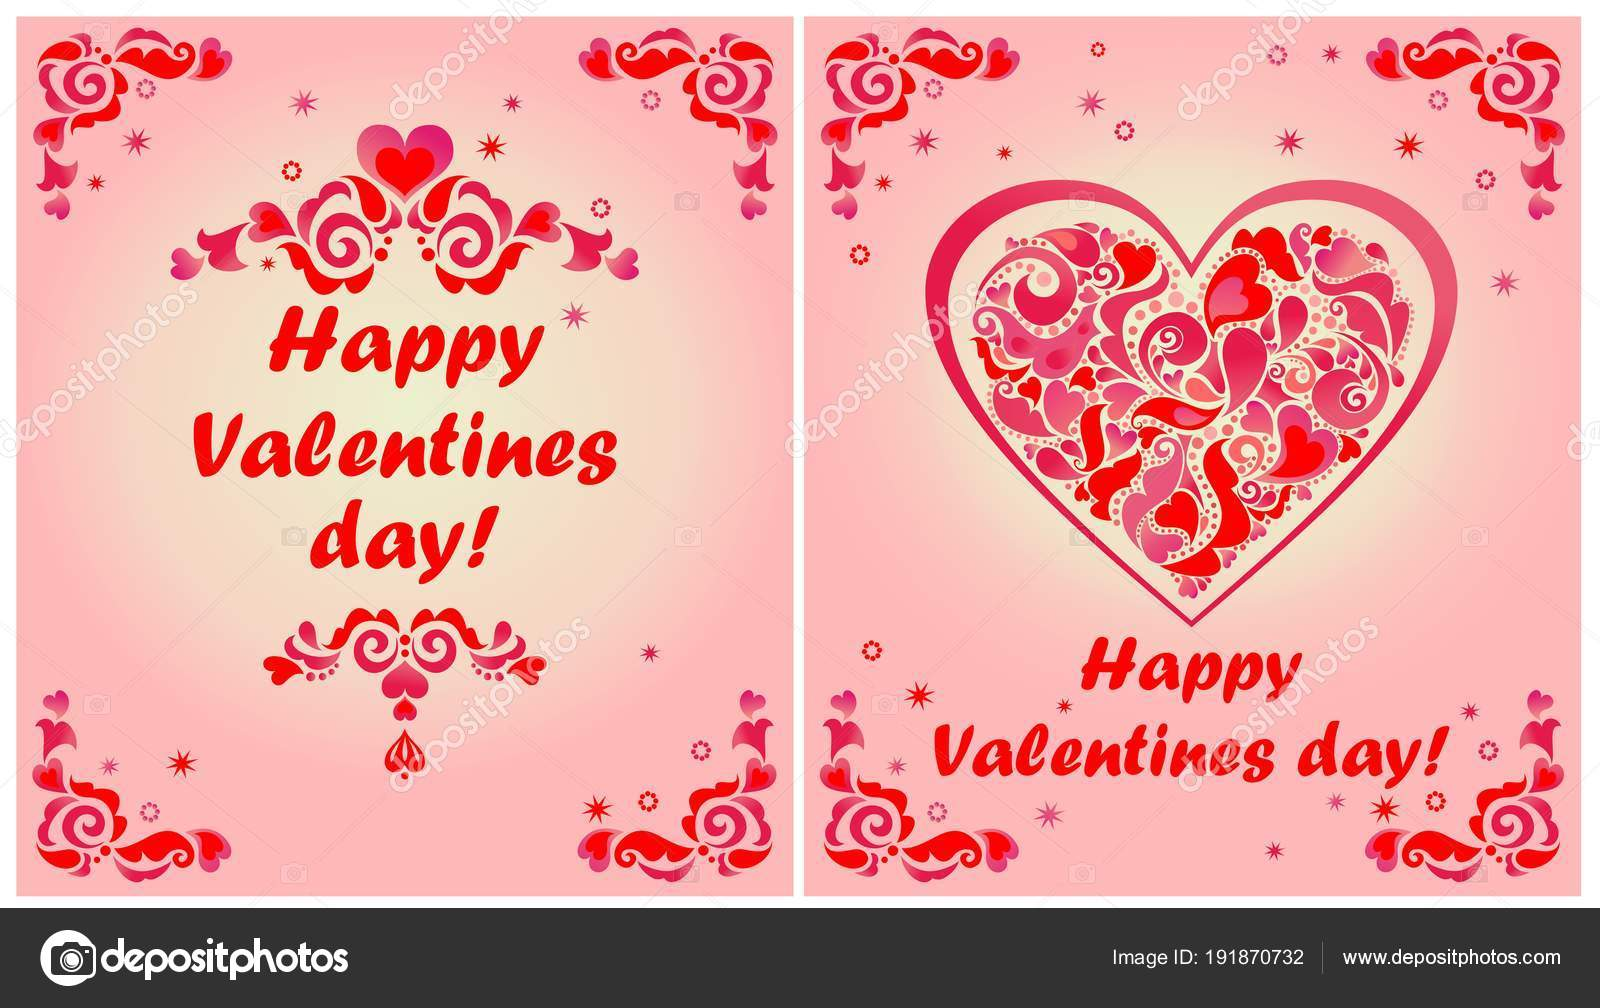 Greeting Cards Valentines Day Red Floral Decorative Borders Heart